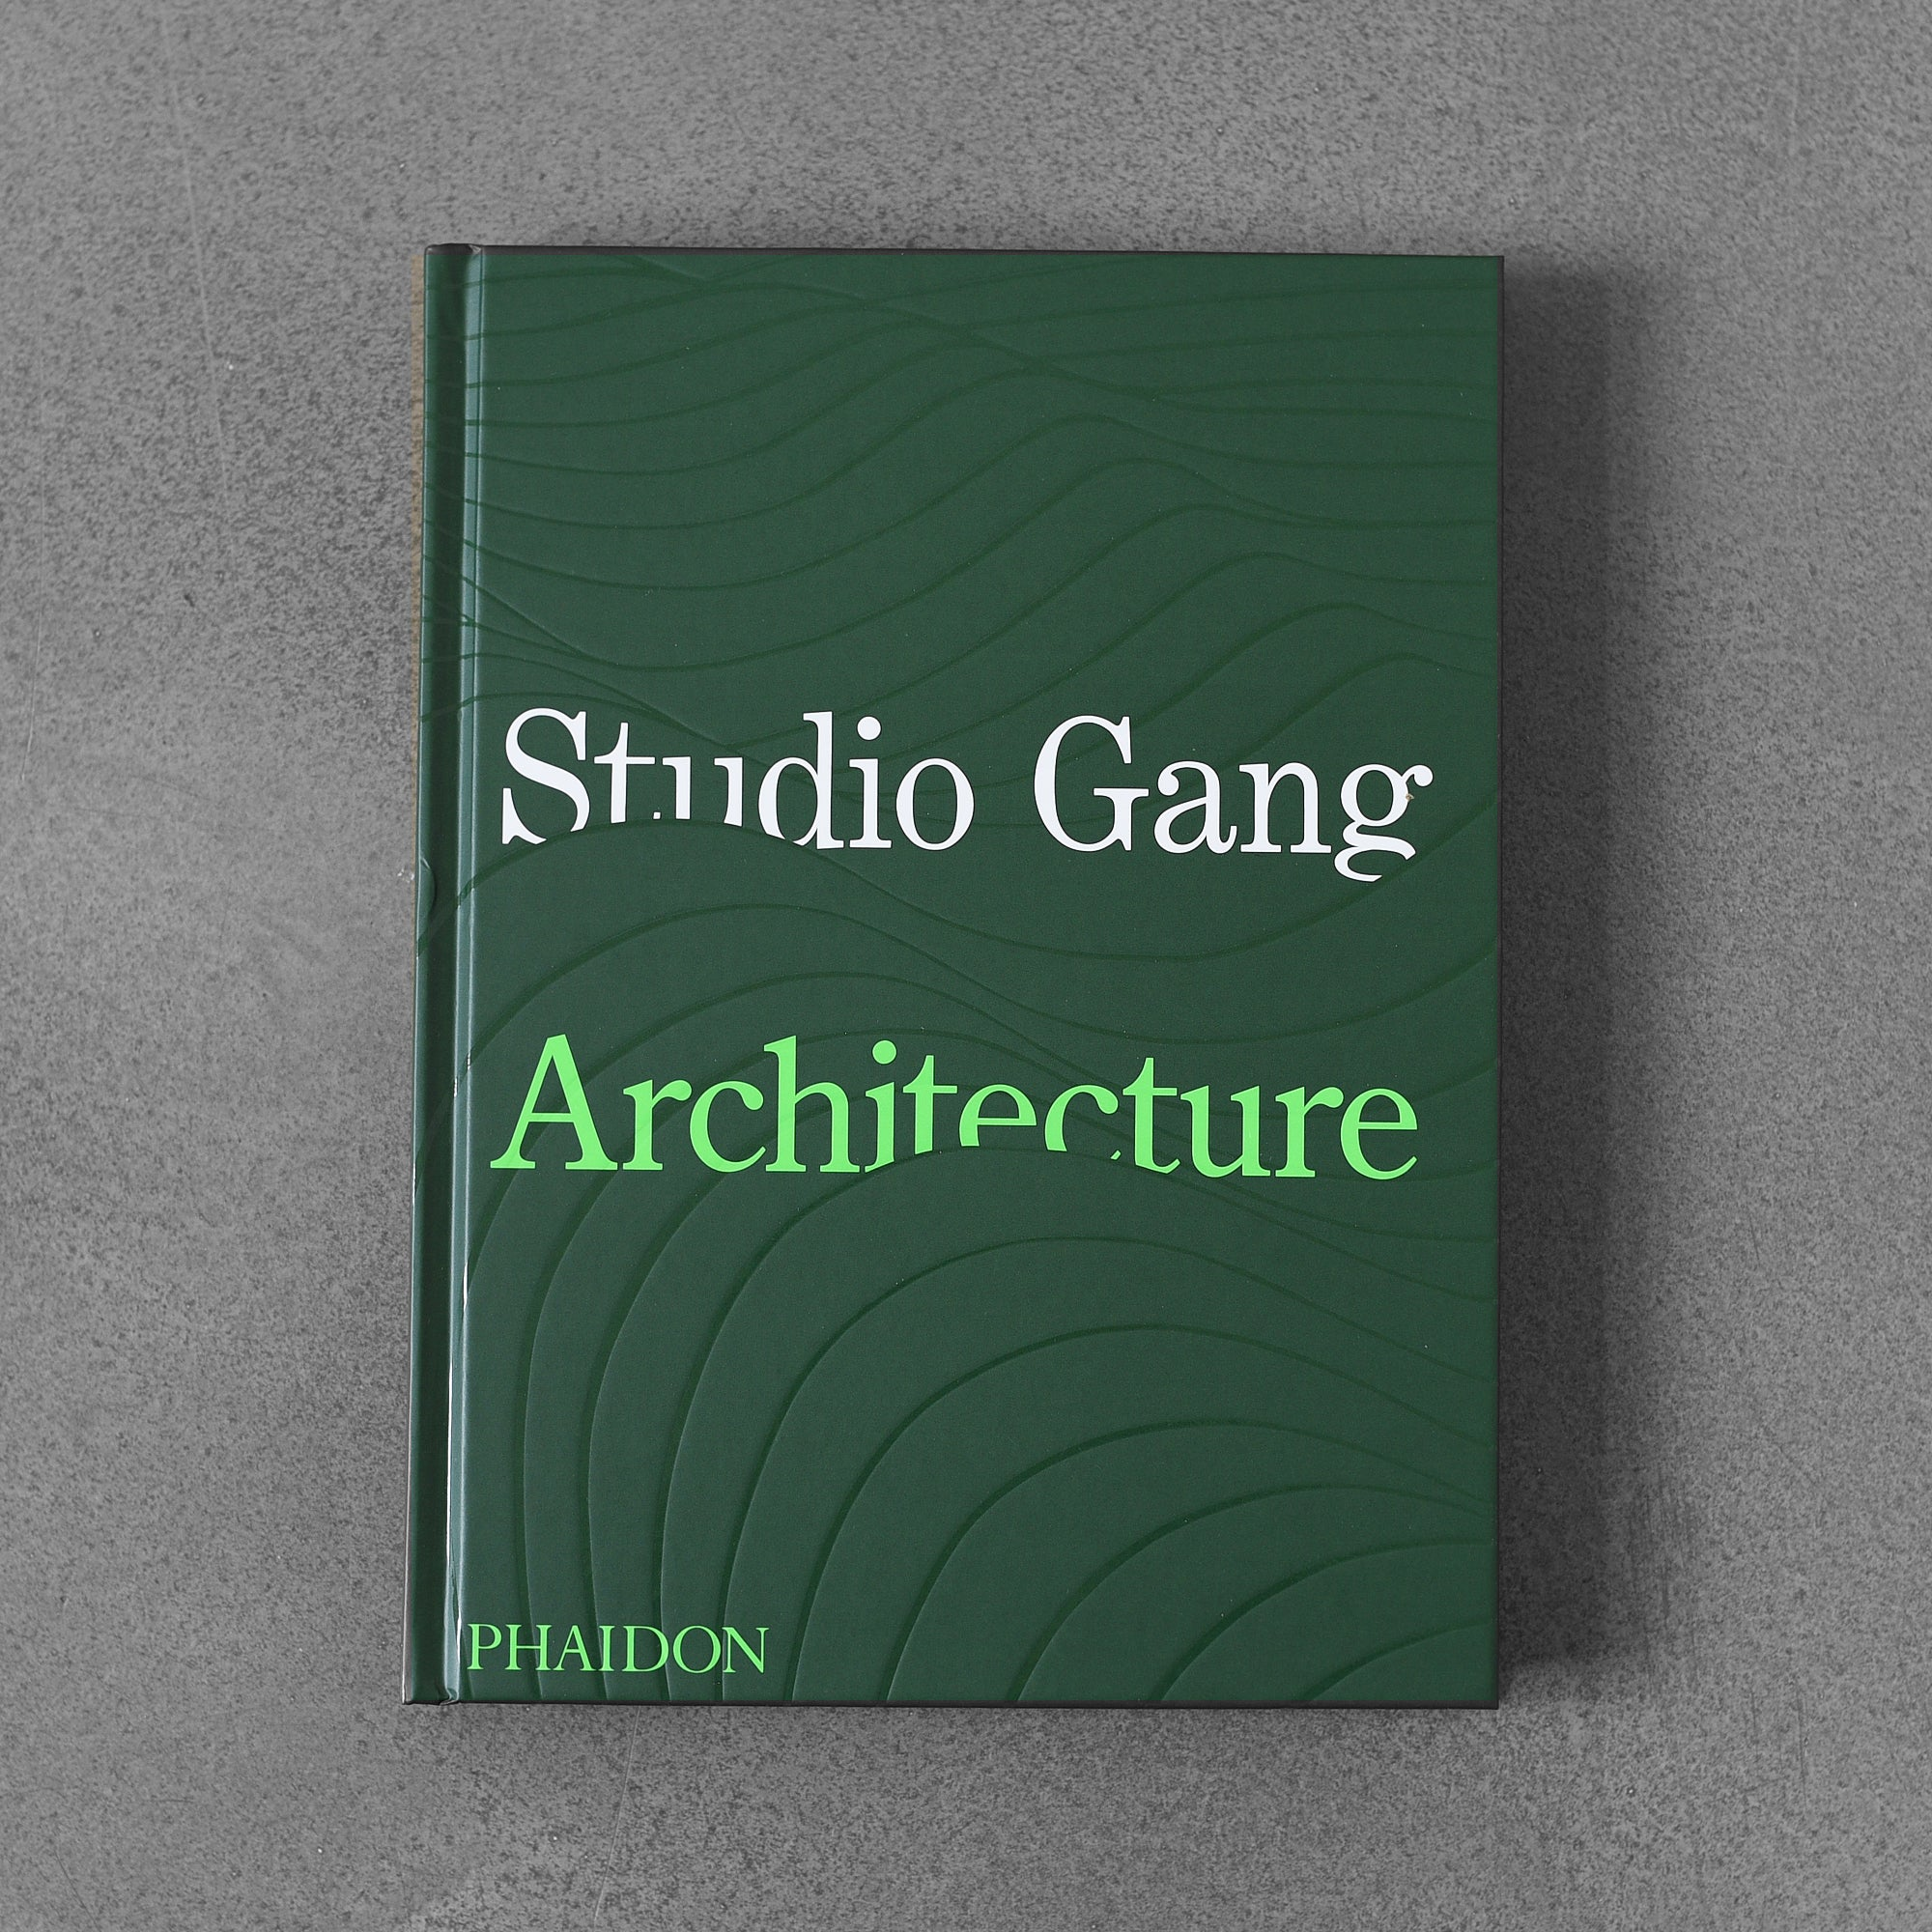 Studio Gang Architecture